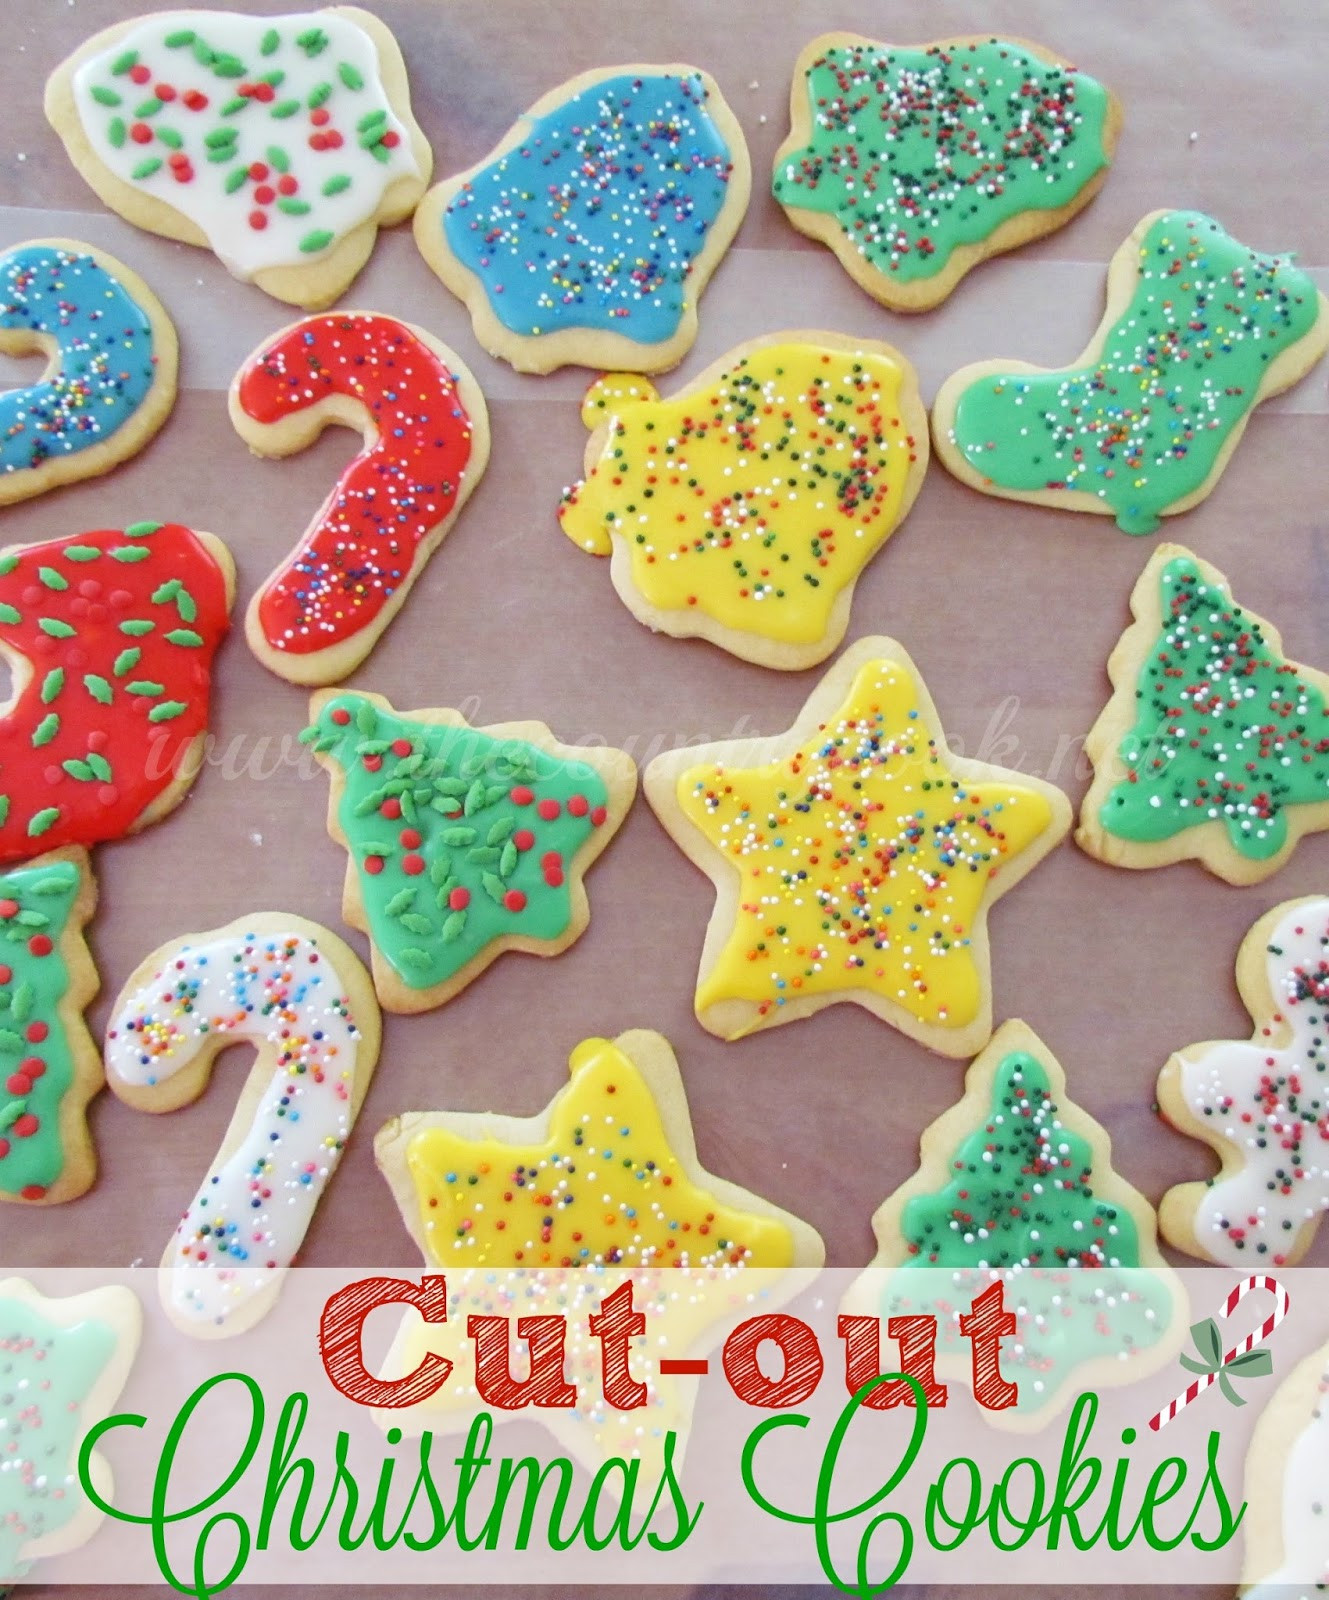 Cutout Christmas Cookies  Cut Out Sugar Cookies The Country Cook